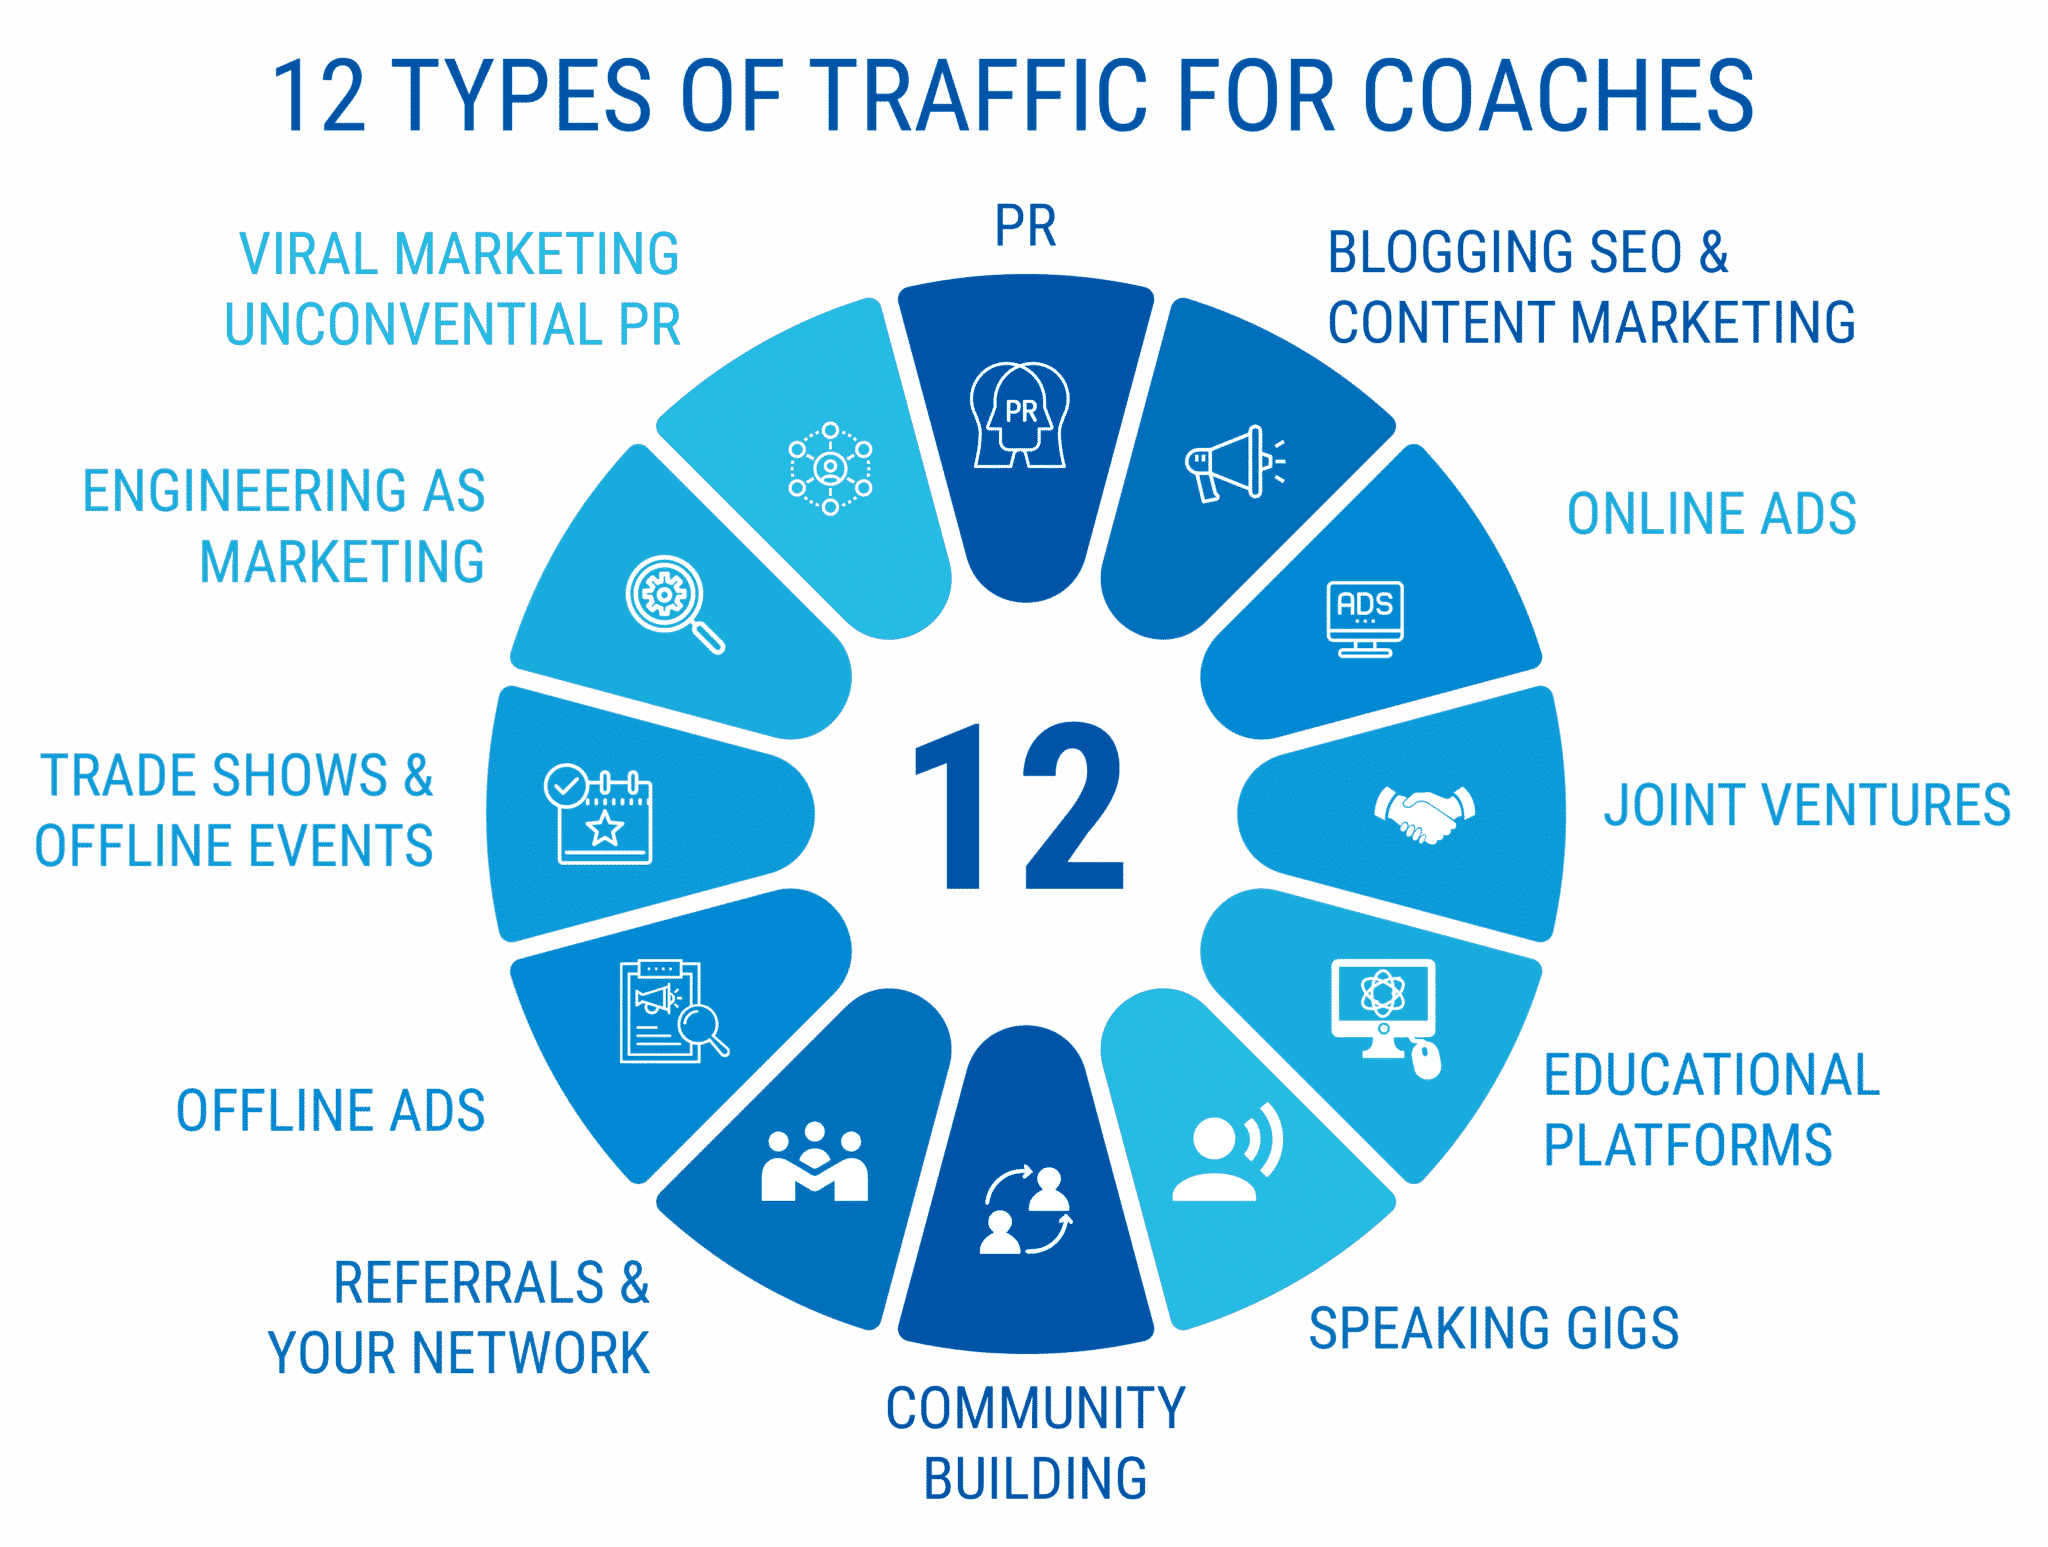 12 types of traffic for coaches - starting a coaching business while working full-time